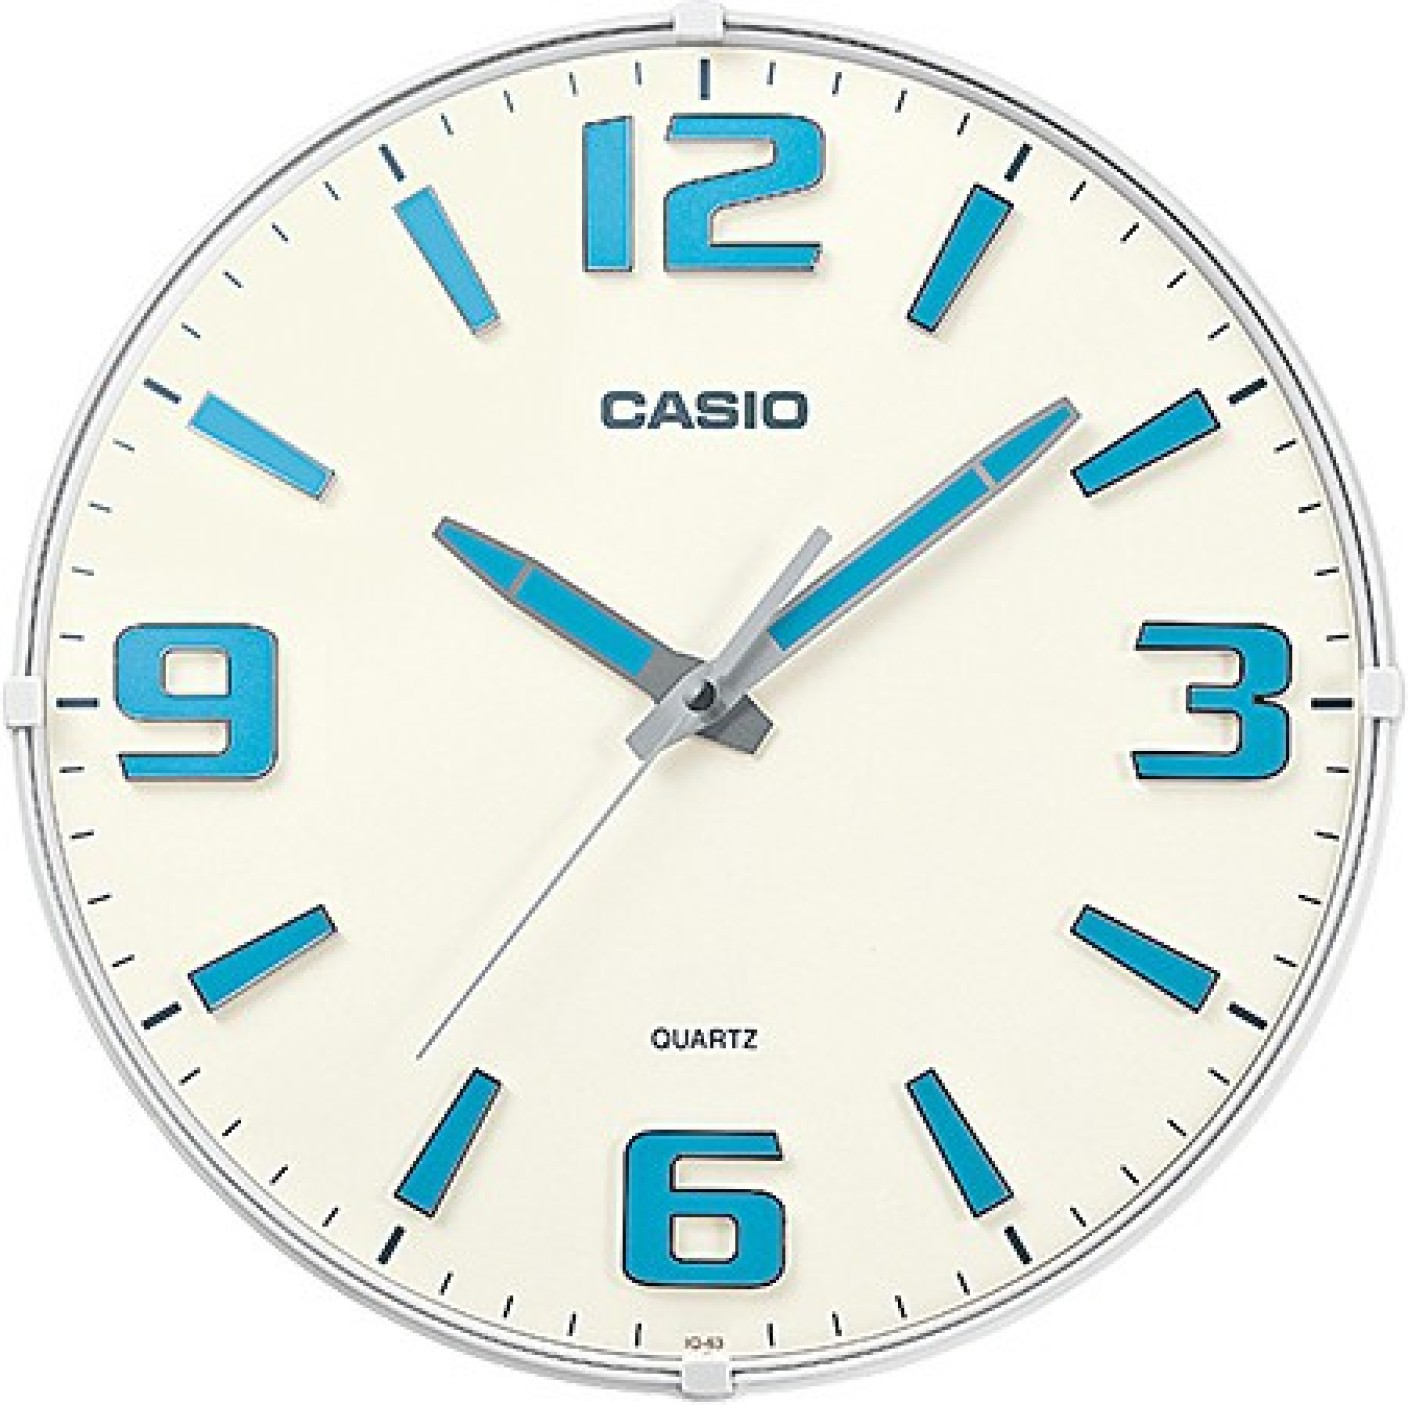 Casio analog wall clock price in india buy casio analog wall casio analog wall clock add to cart amipublicfo Gallery